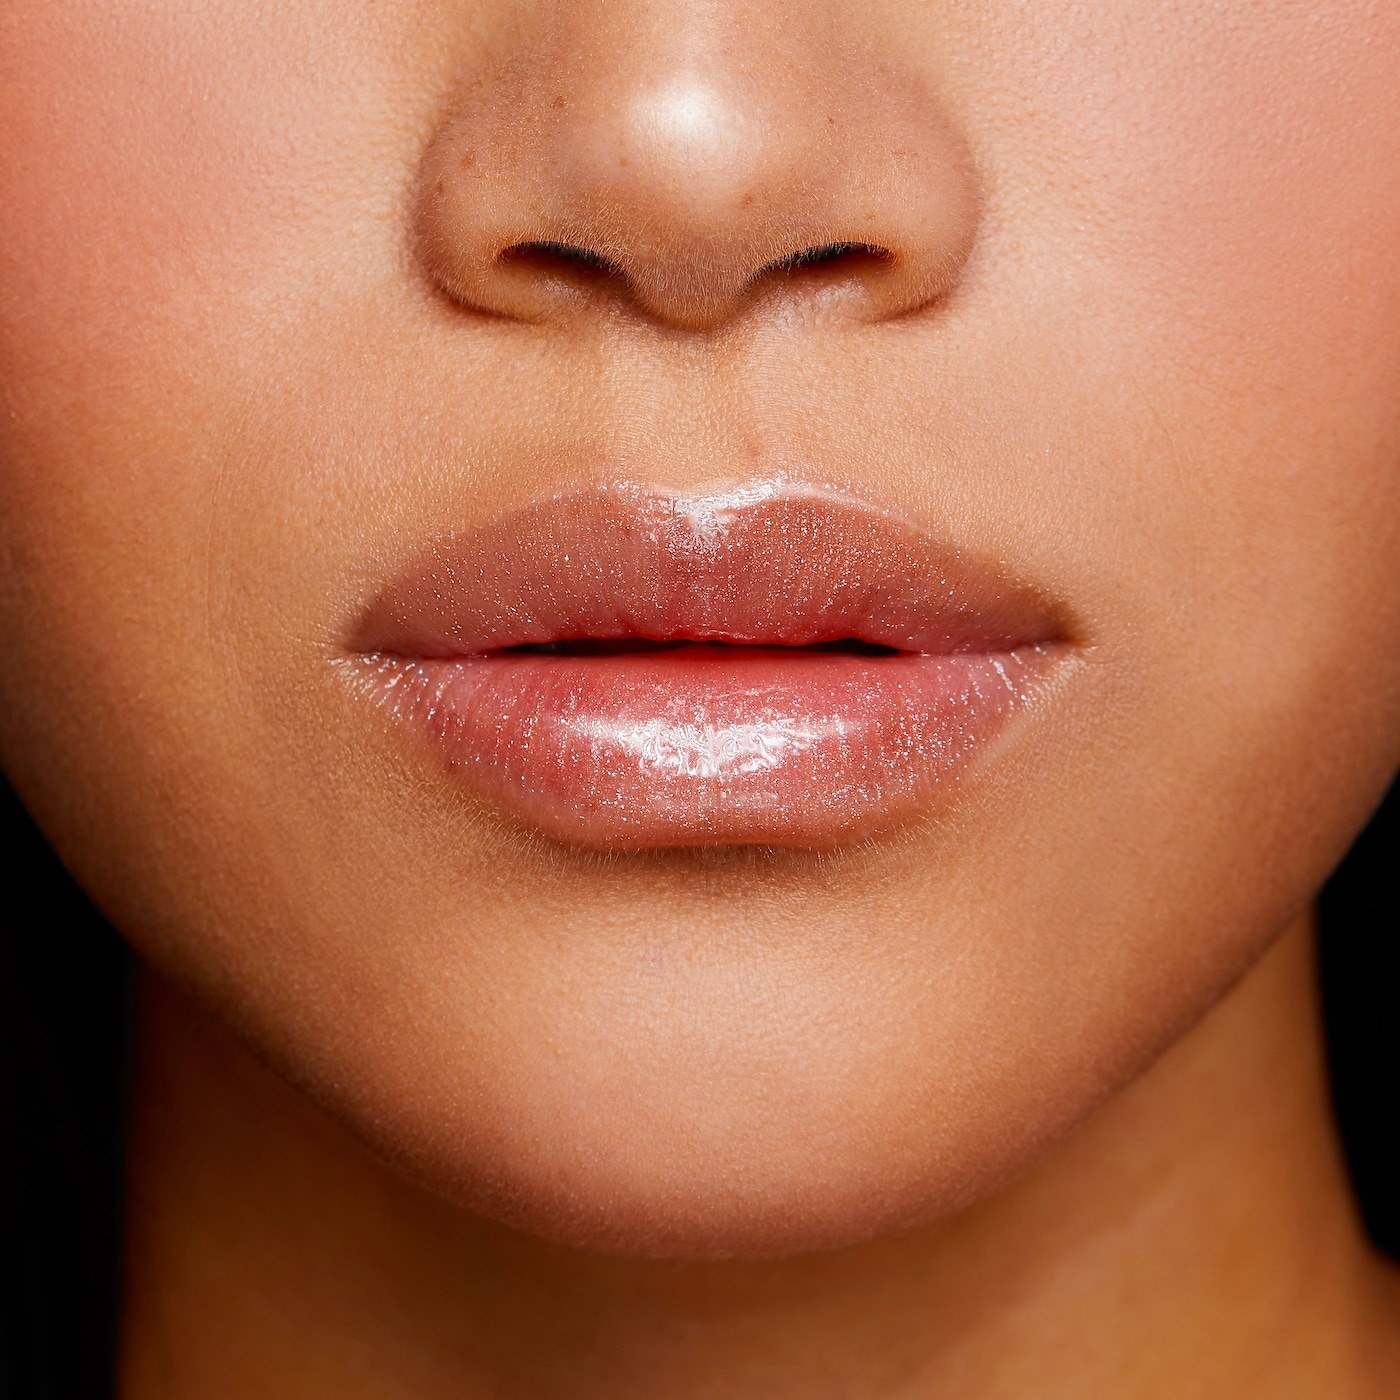 person's lips with the gloss on